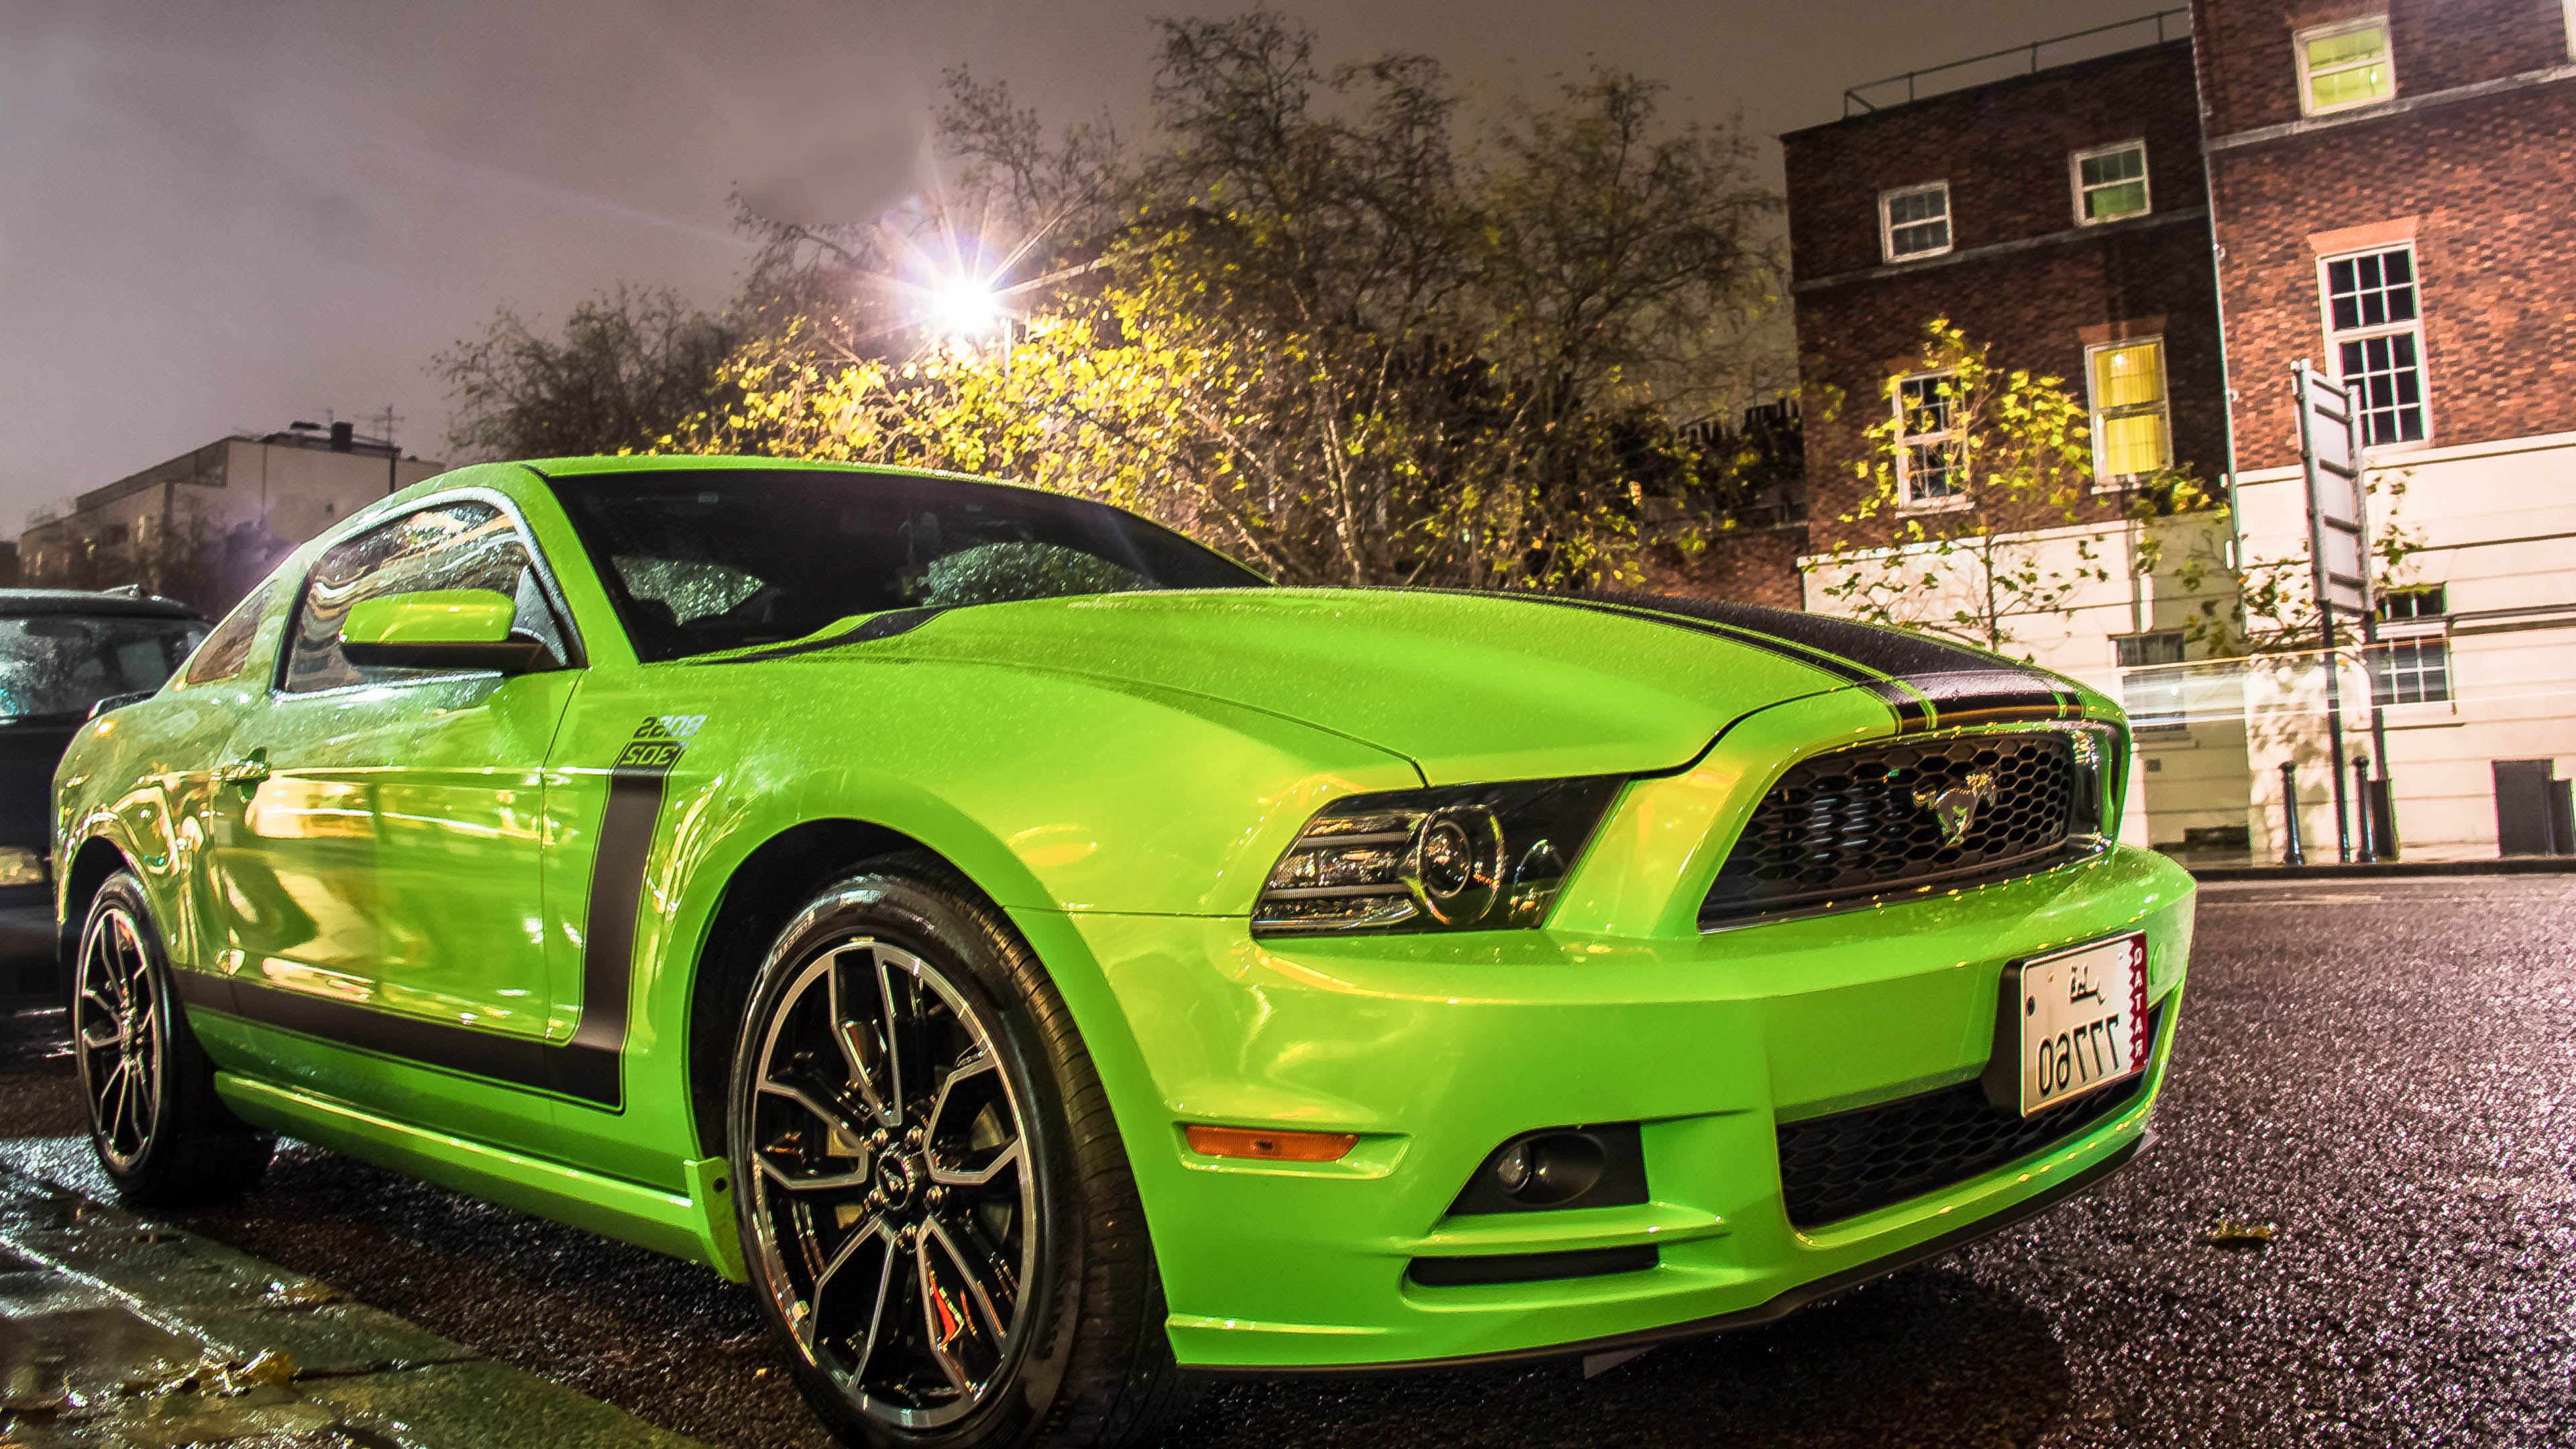 The Best Car Wallpapers In The World Ford Mustang New Model Epic Hd Wallpapers 2017